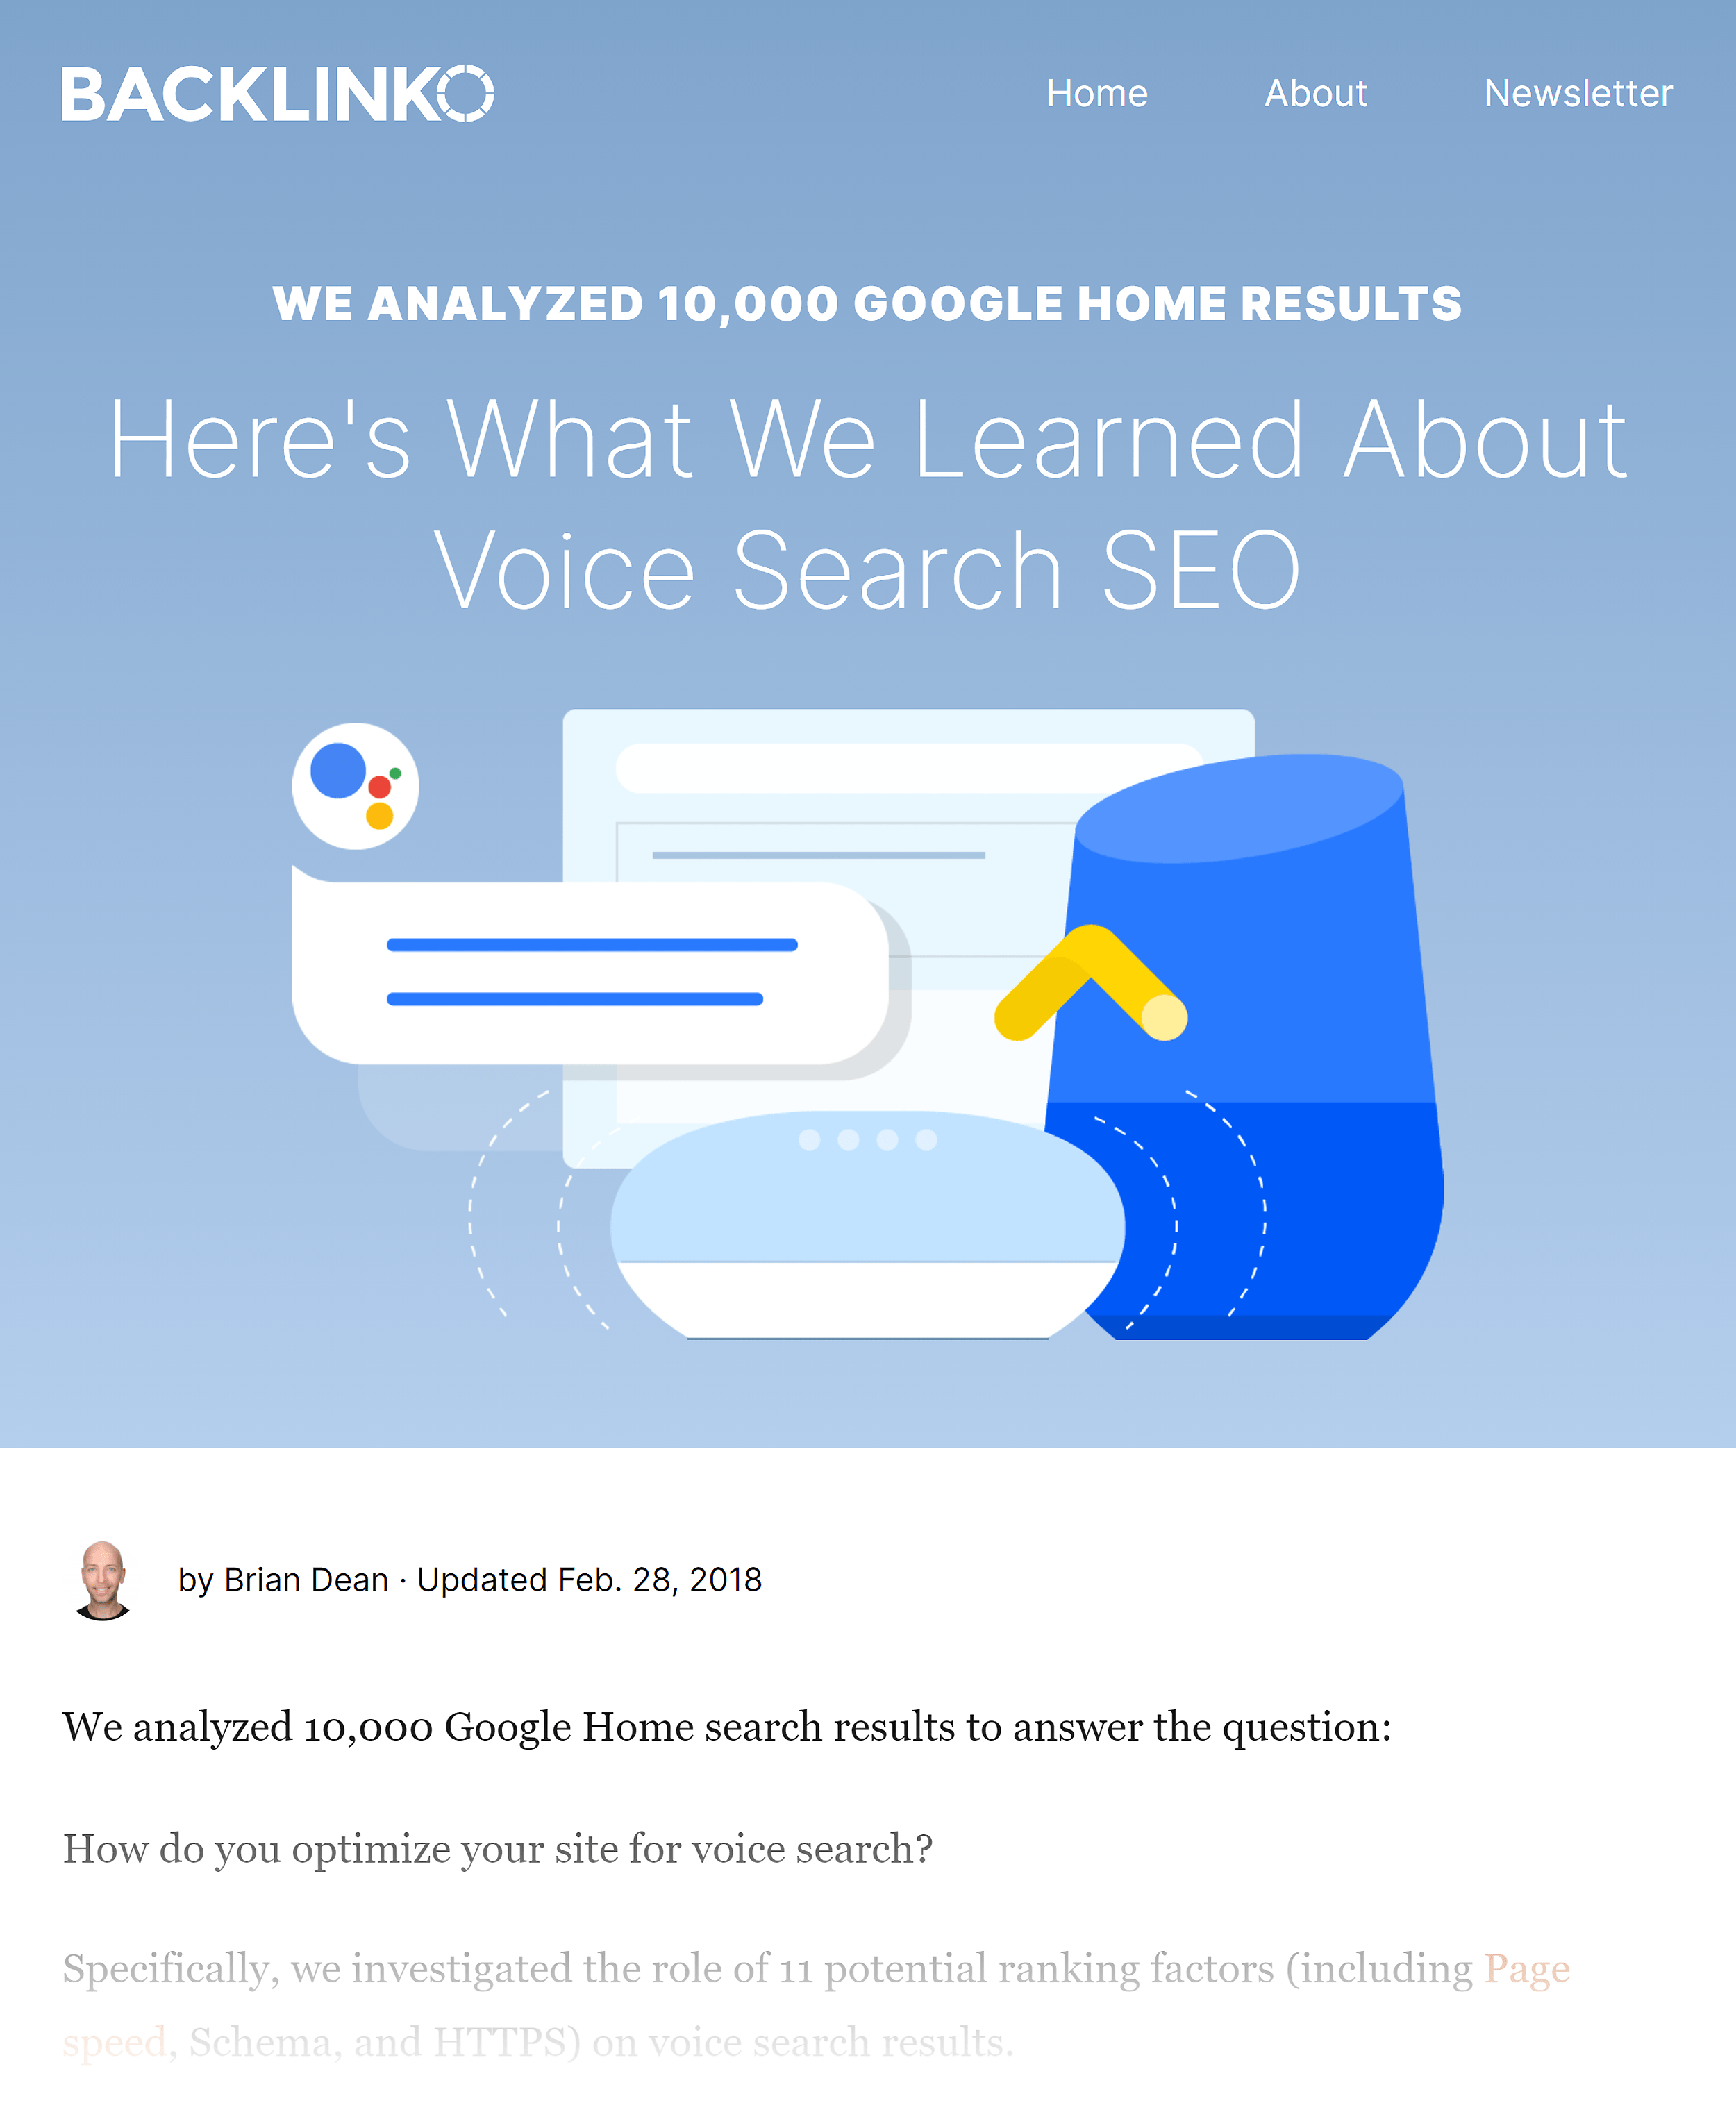 Backlinko – Voice search SEO study